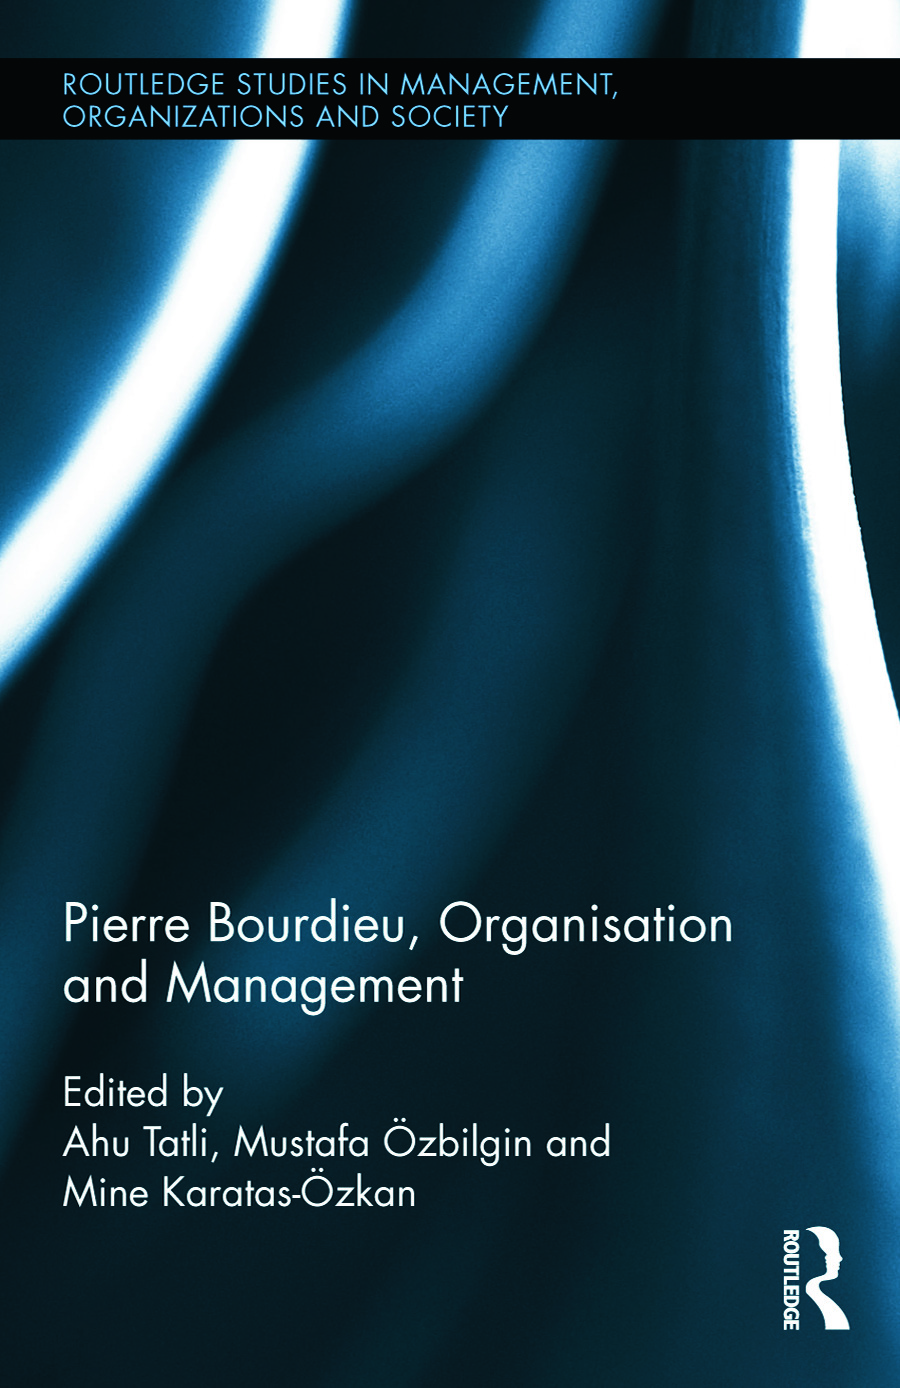 Pierre Bourdieu, Organization, and Management book cover